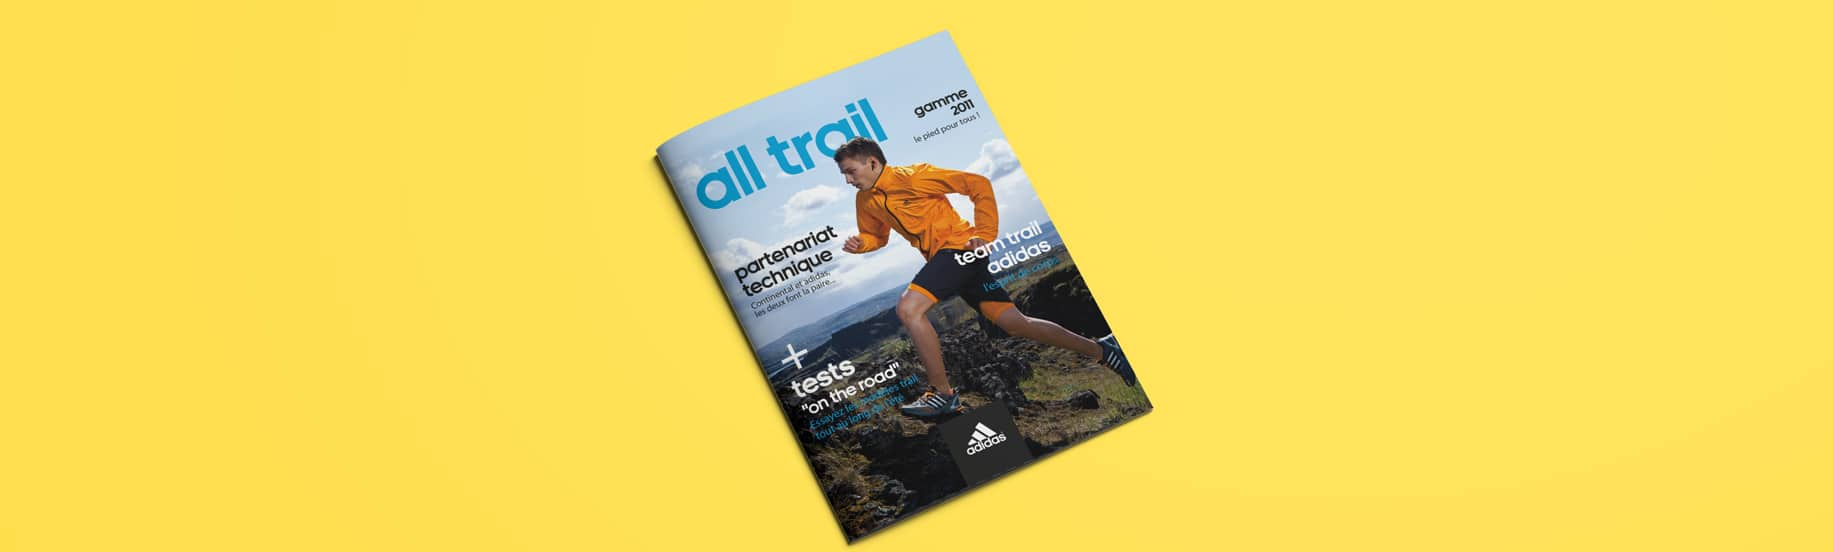 Couverture de magazine adidas all trail